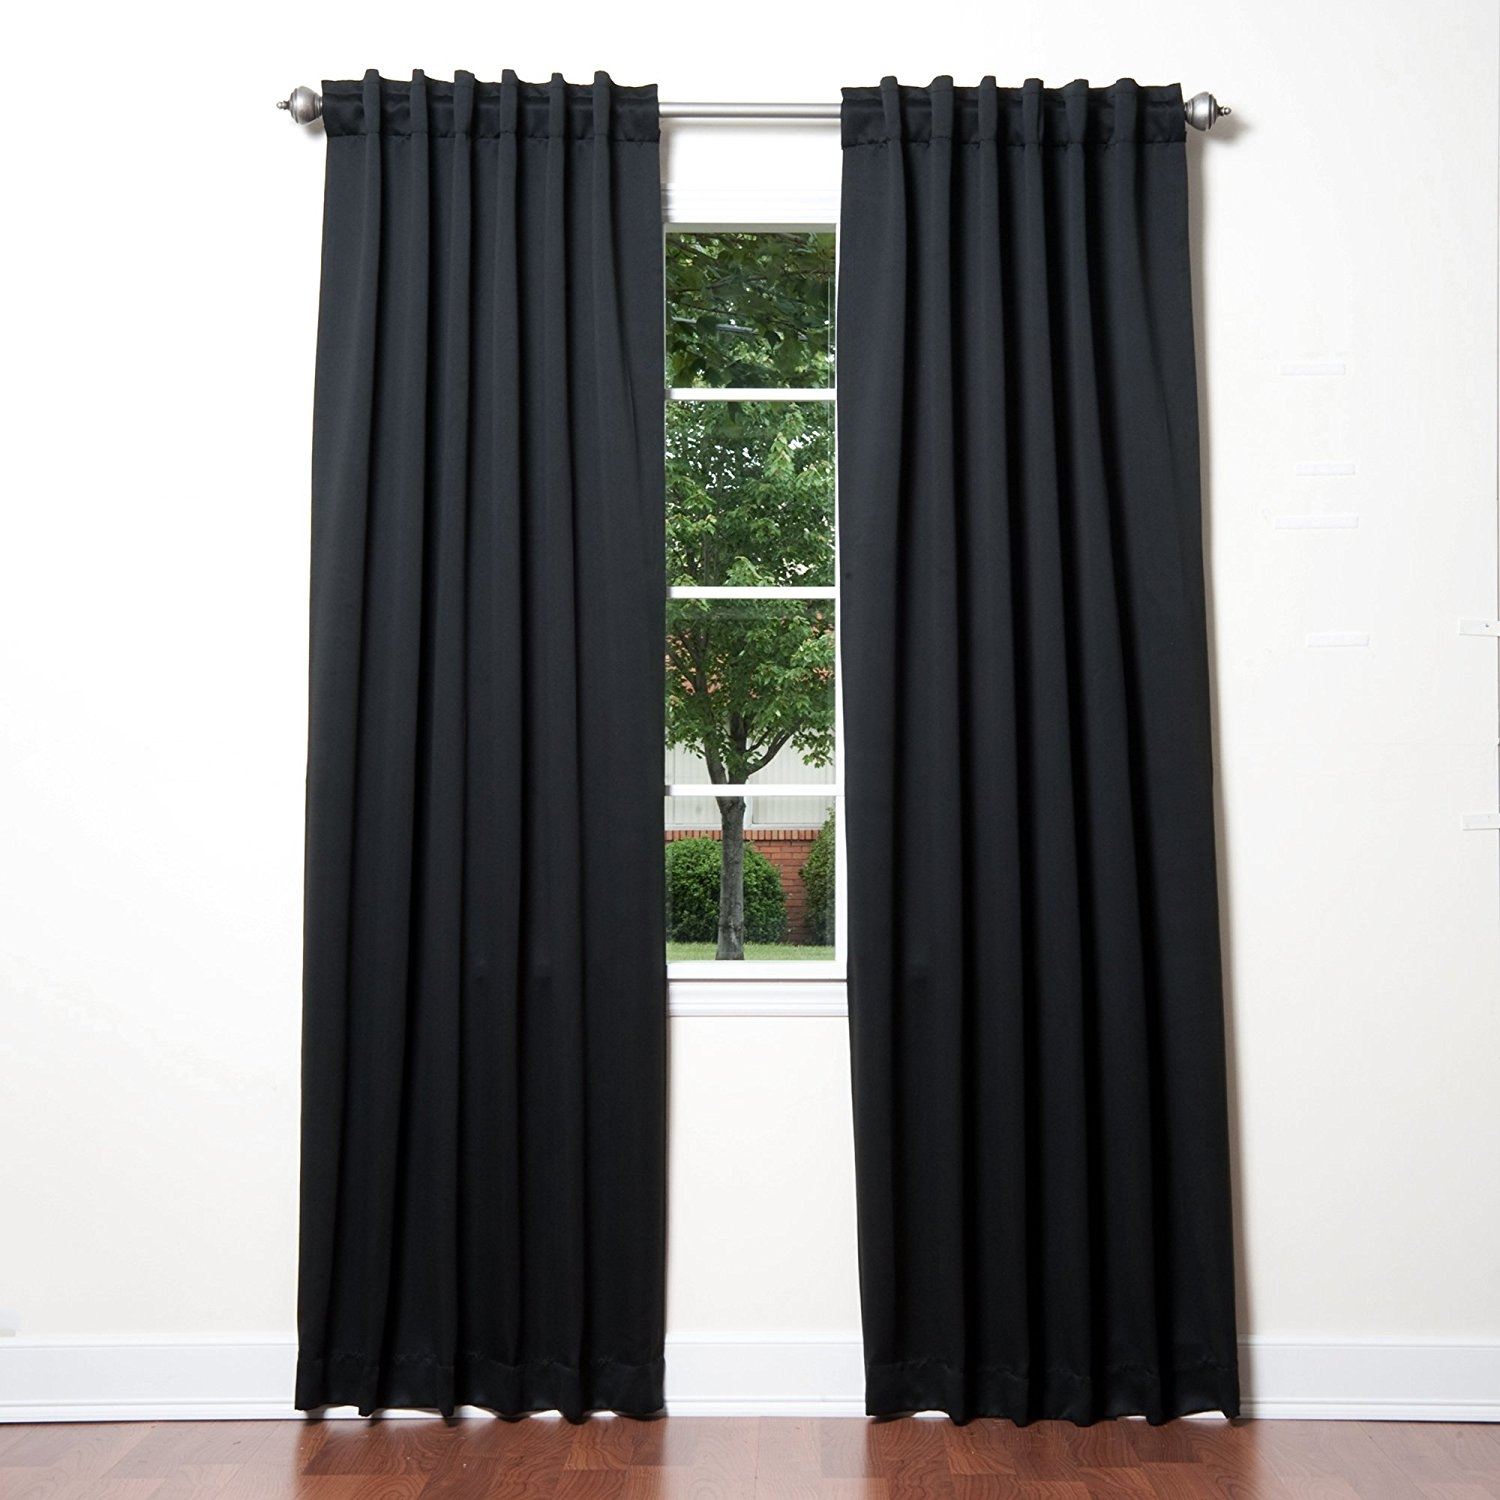 Amazon Best Home Fashion Thermal Insulated Blackout Curtains With Thermal Insulation Curtains (Image 1 of 15)